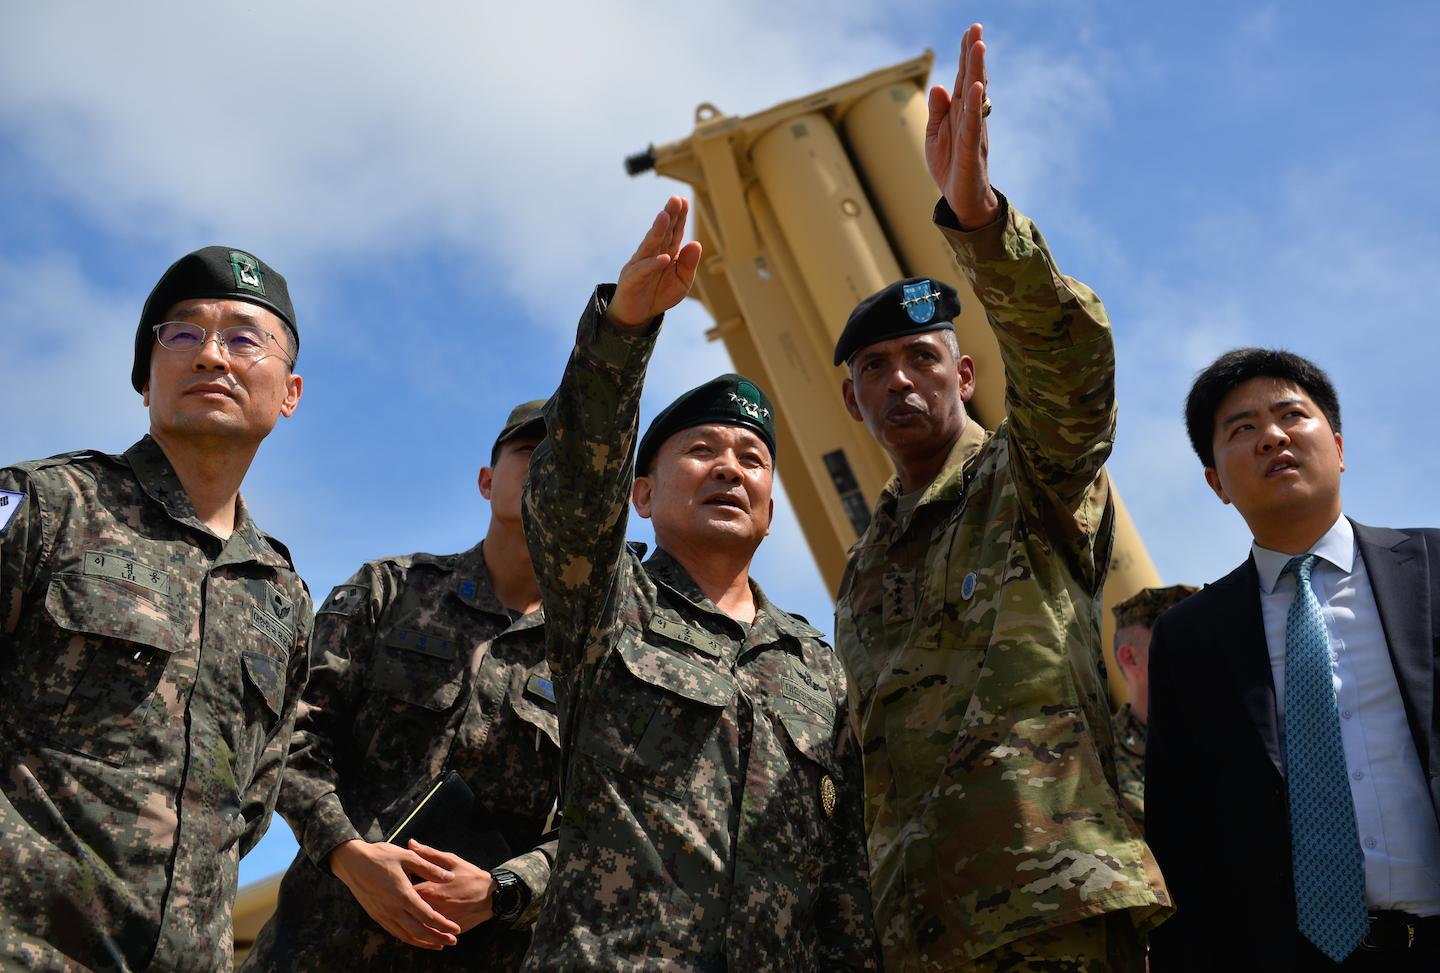 South Korea's Gen. Sun Jin Lee visits Guam's THAAD site. DVIDSHUB/Public domain